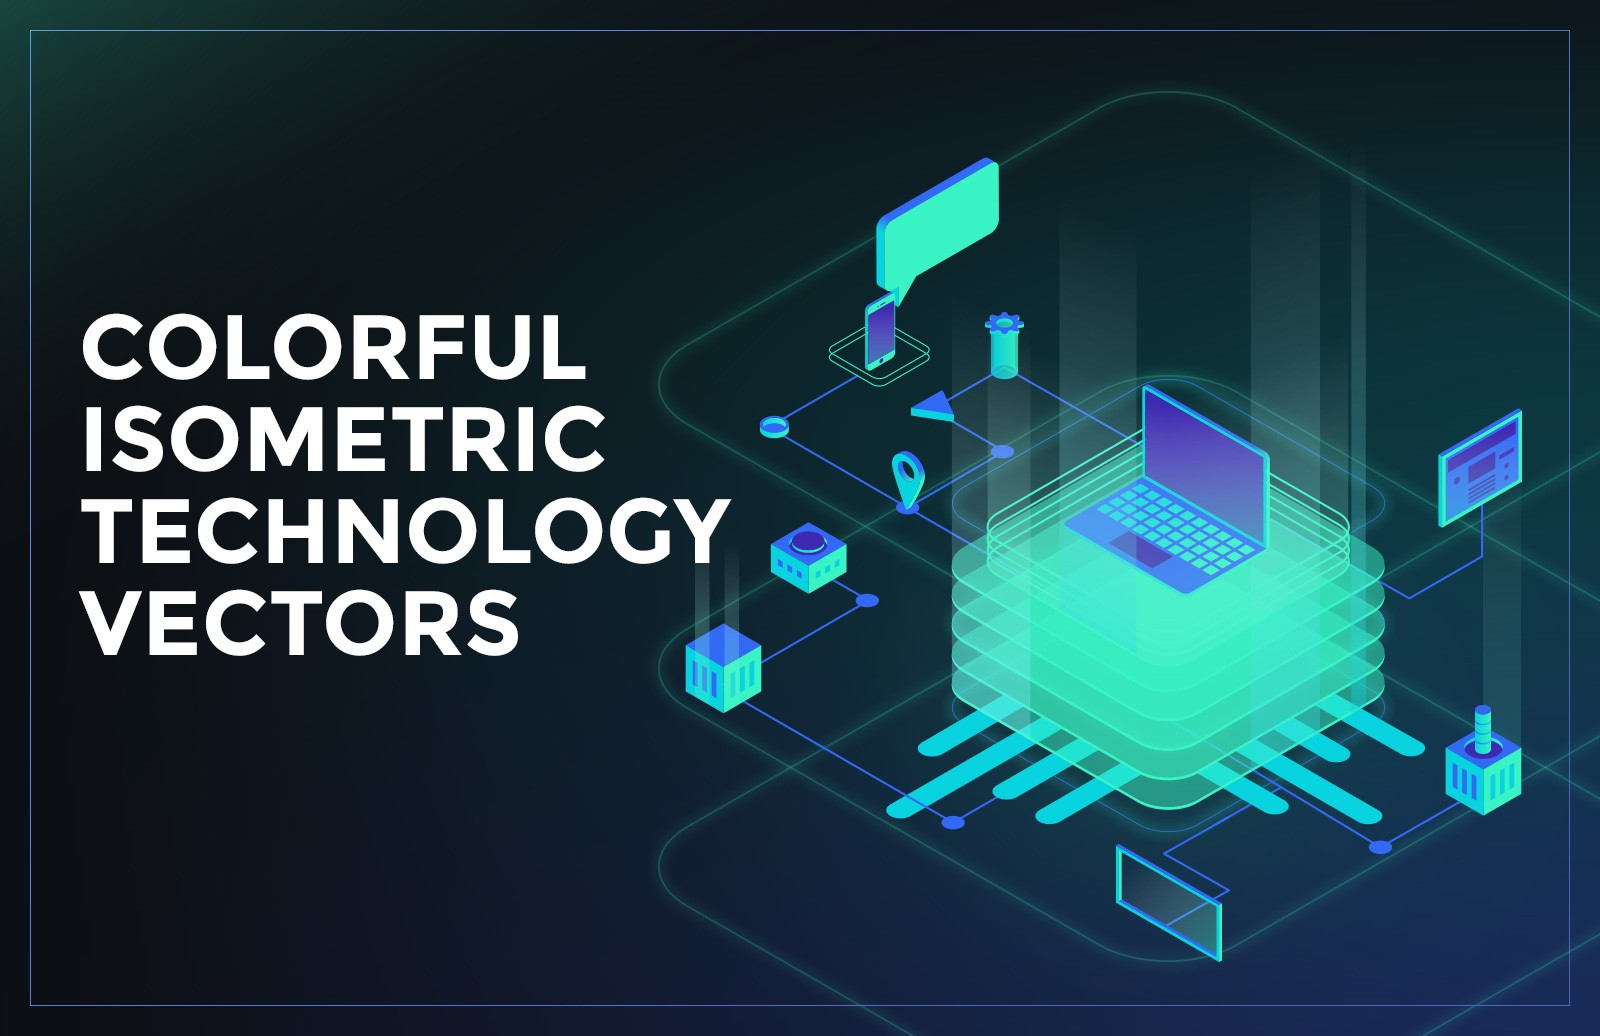 Colorful Isometric Technology Vectors